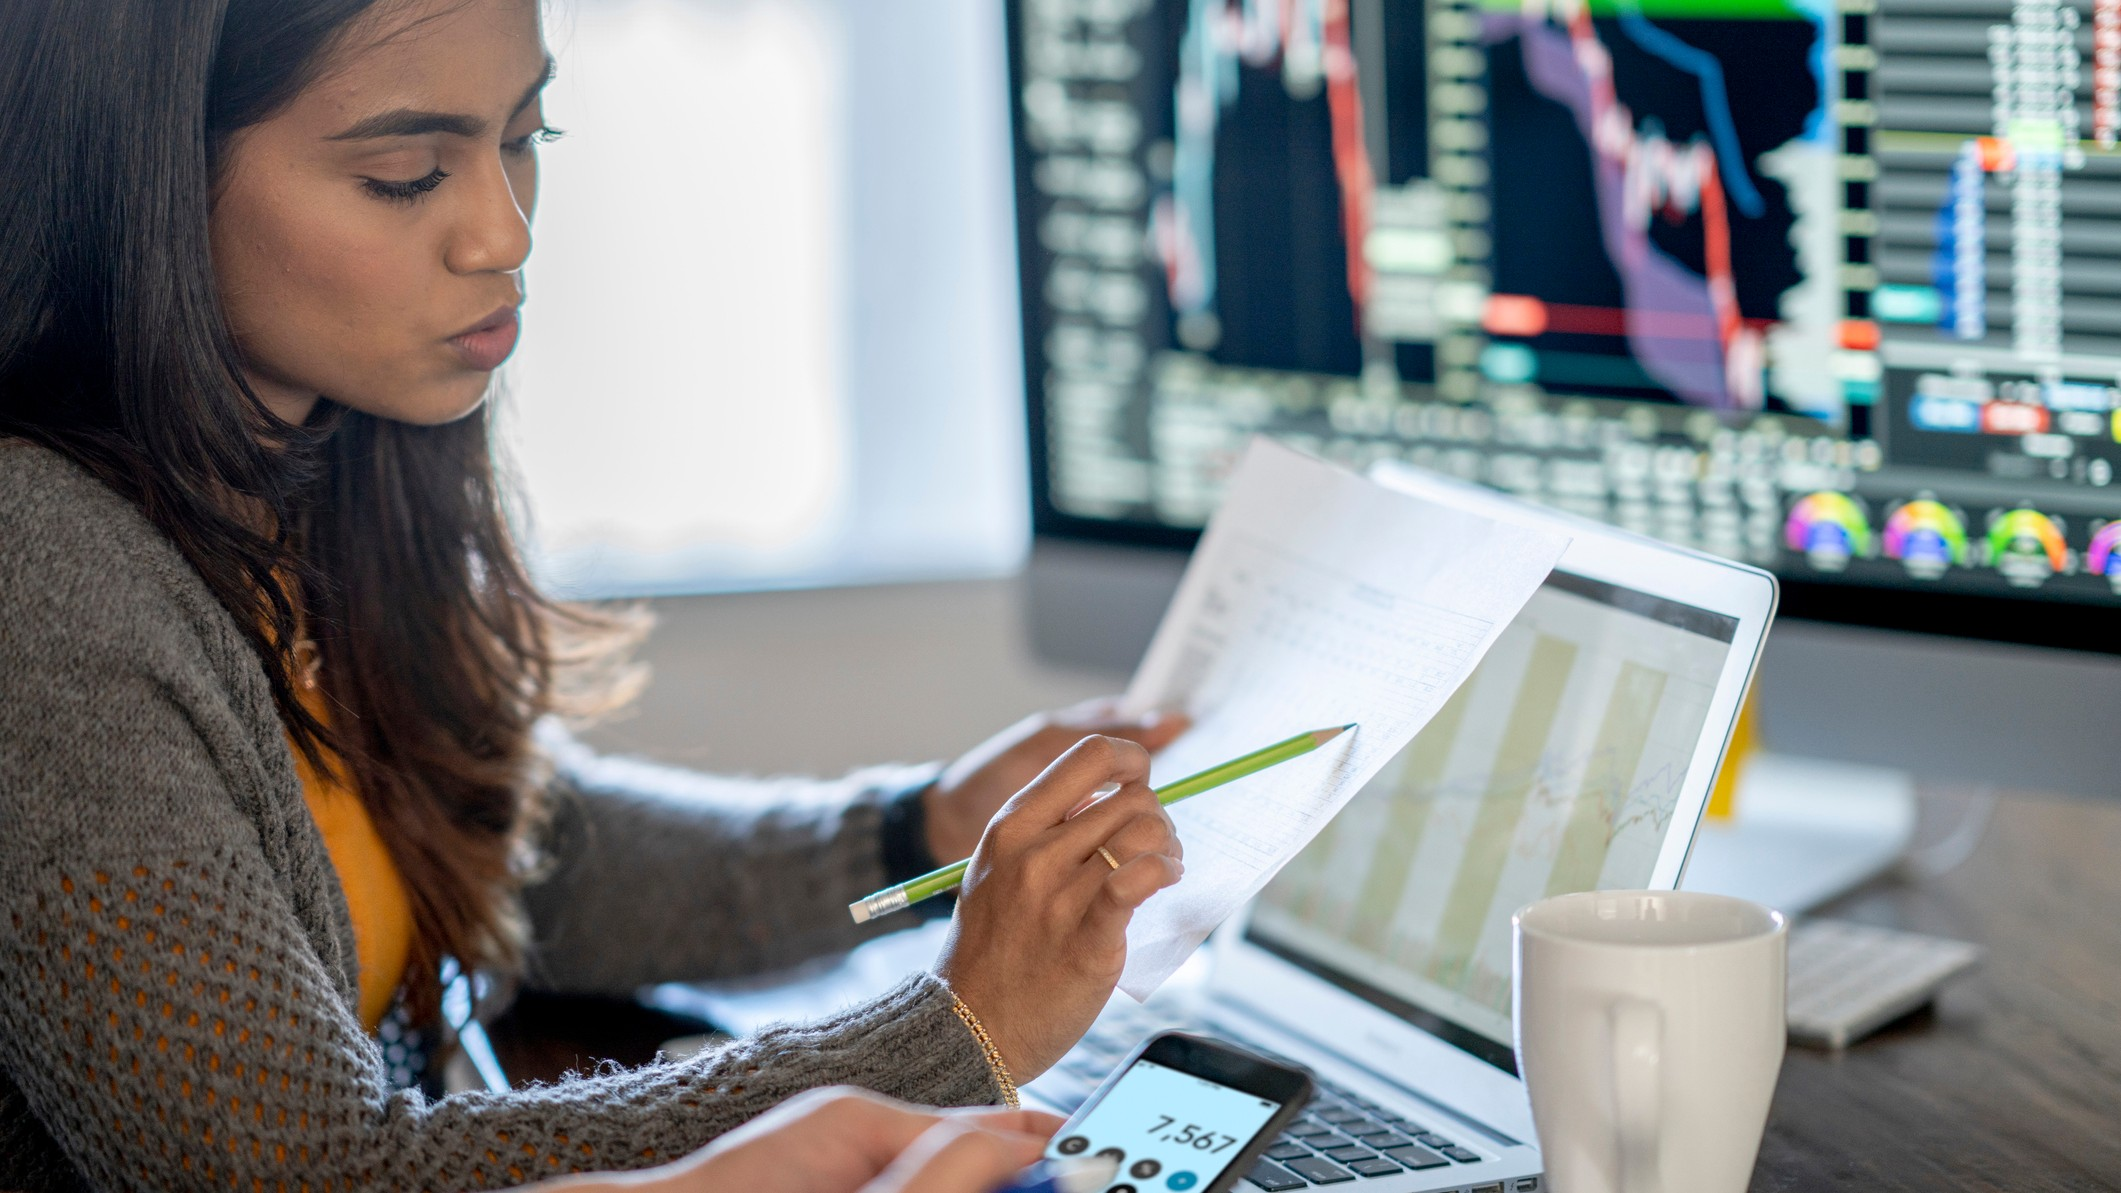 young woman reviewing financial reports at desk with multiple computer screens